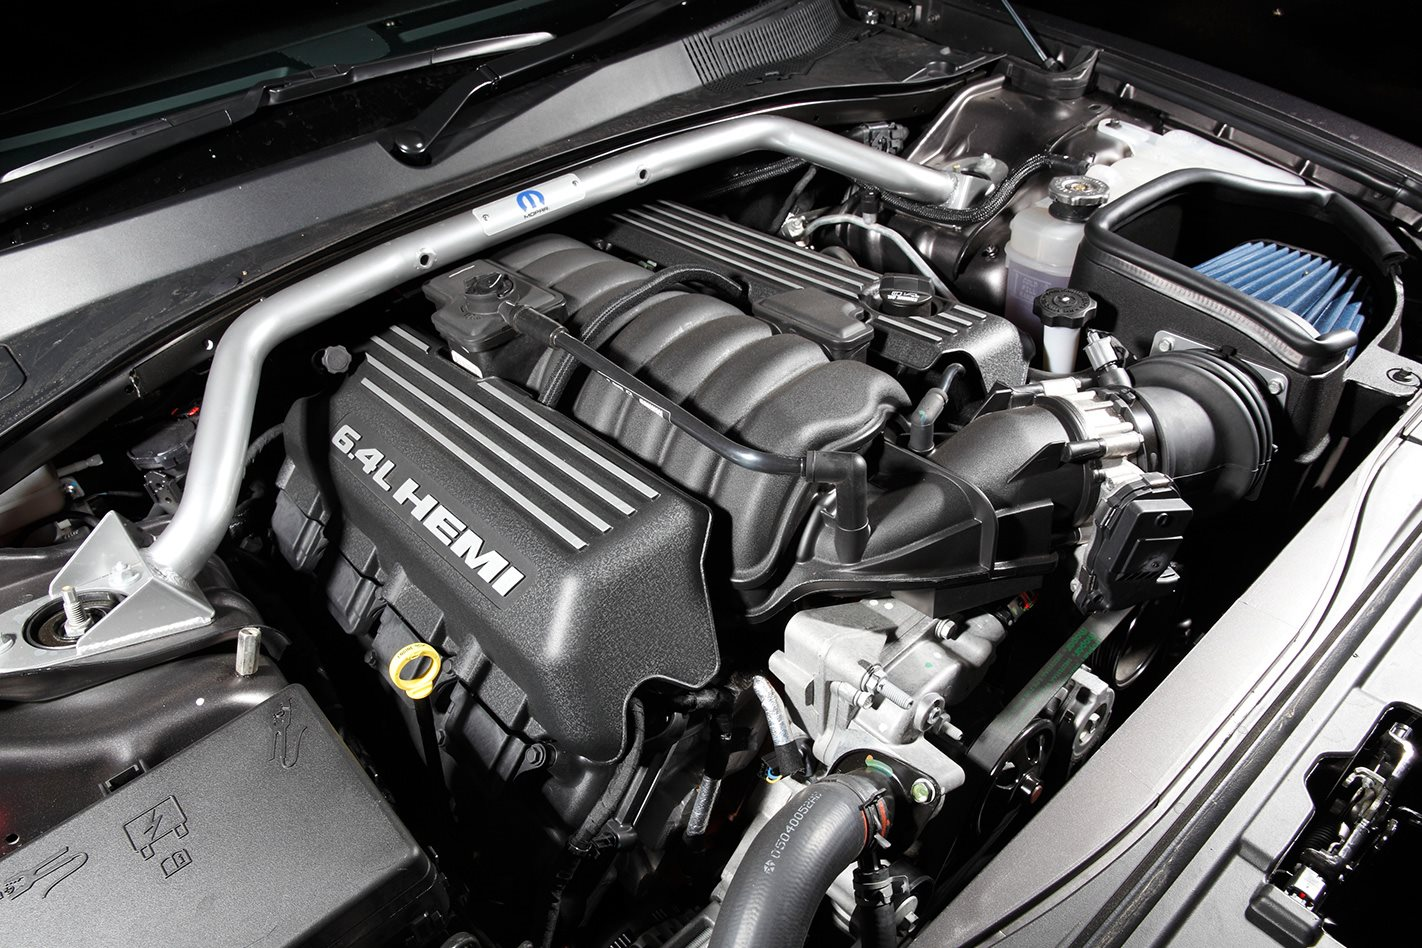 2013 Chrysler 300 SRT8 Core engine